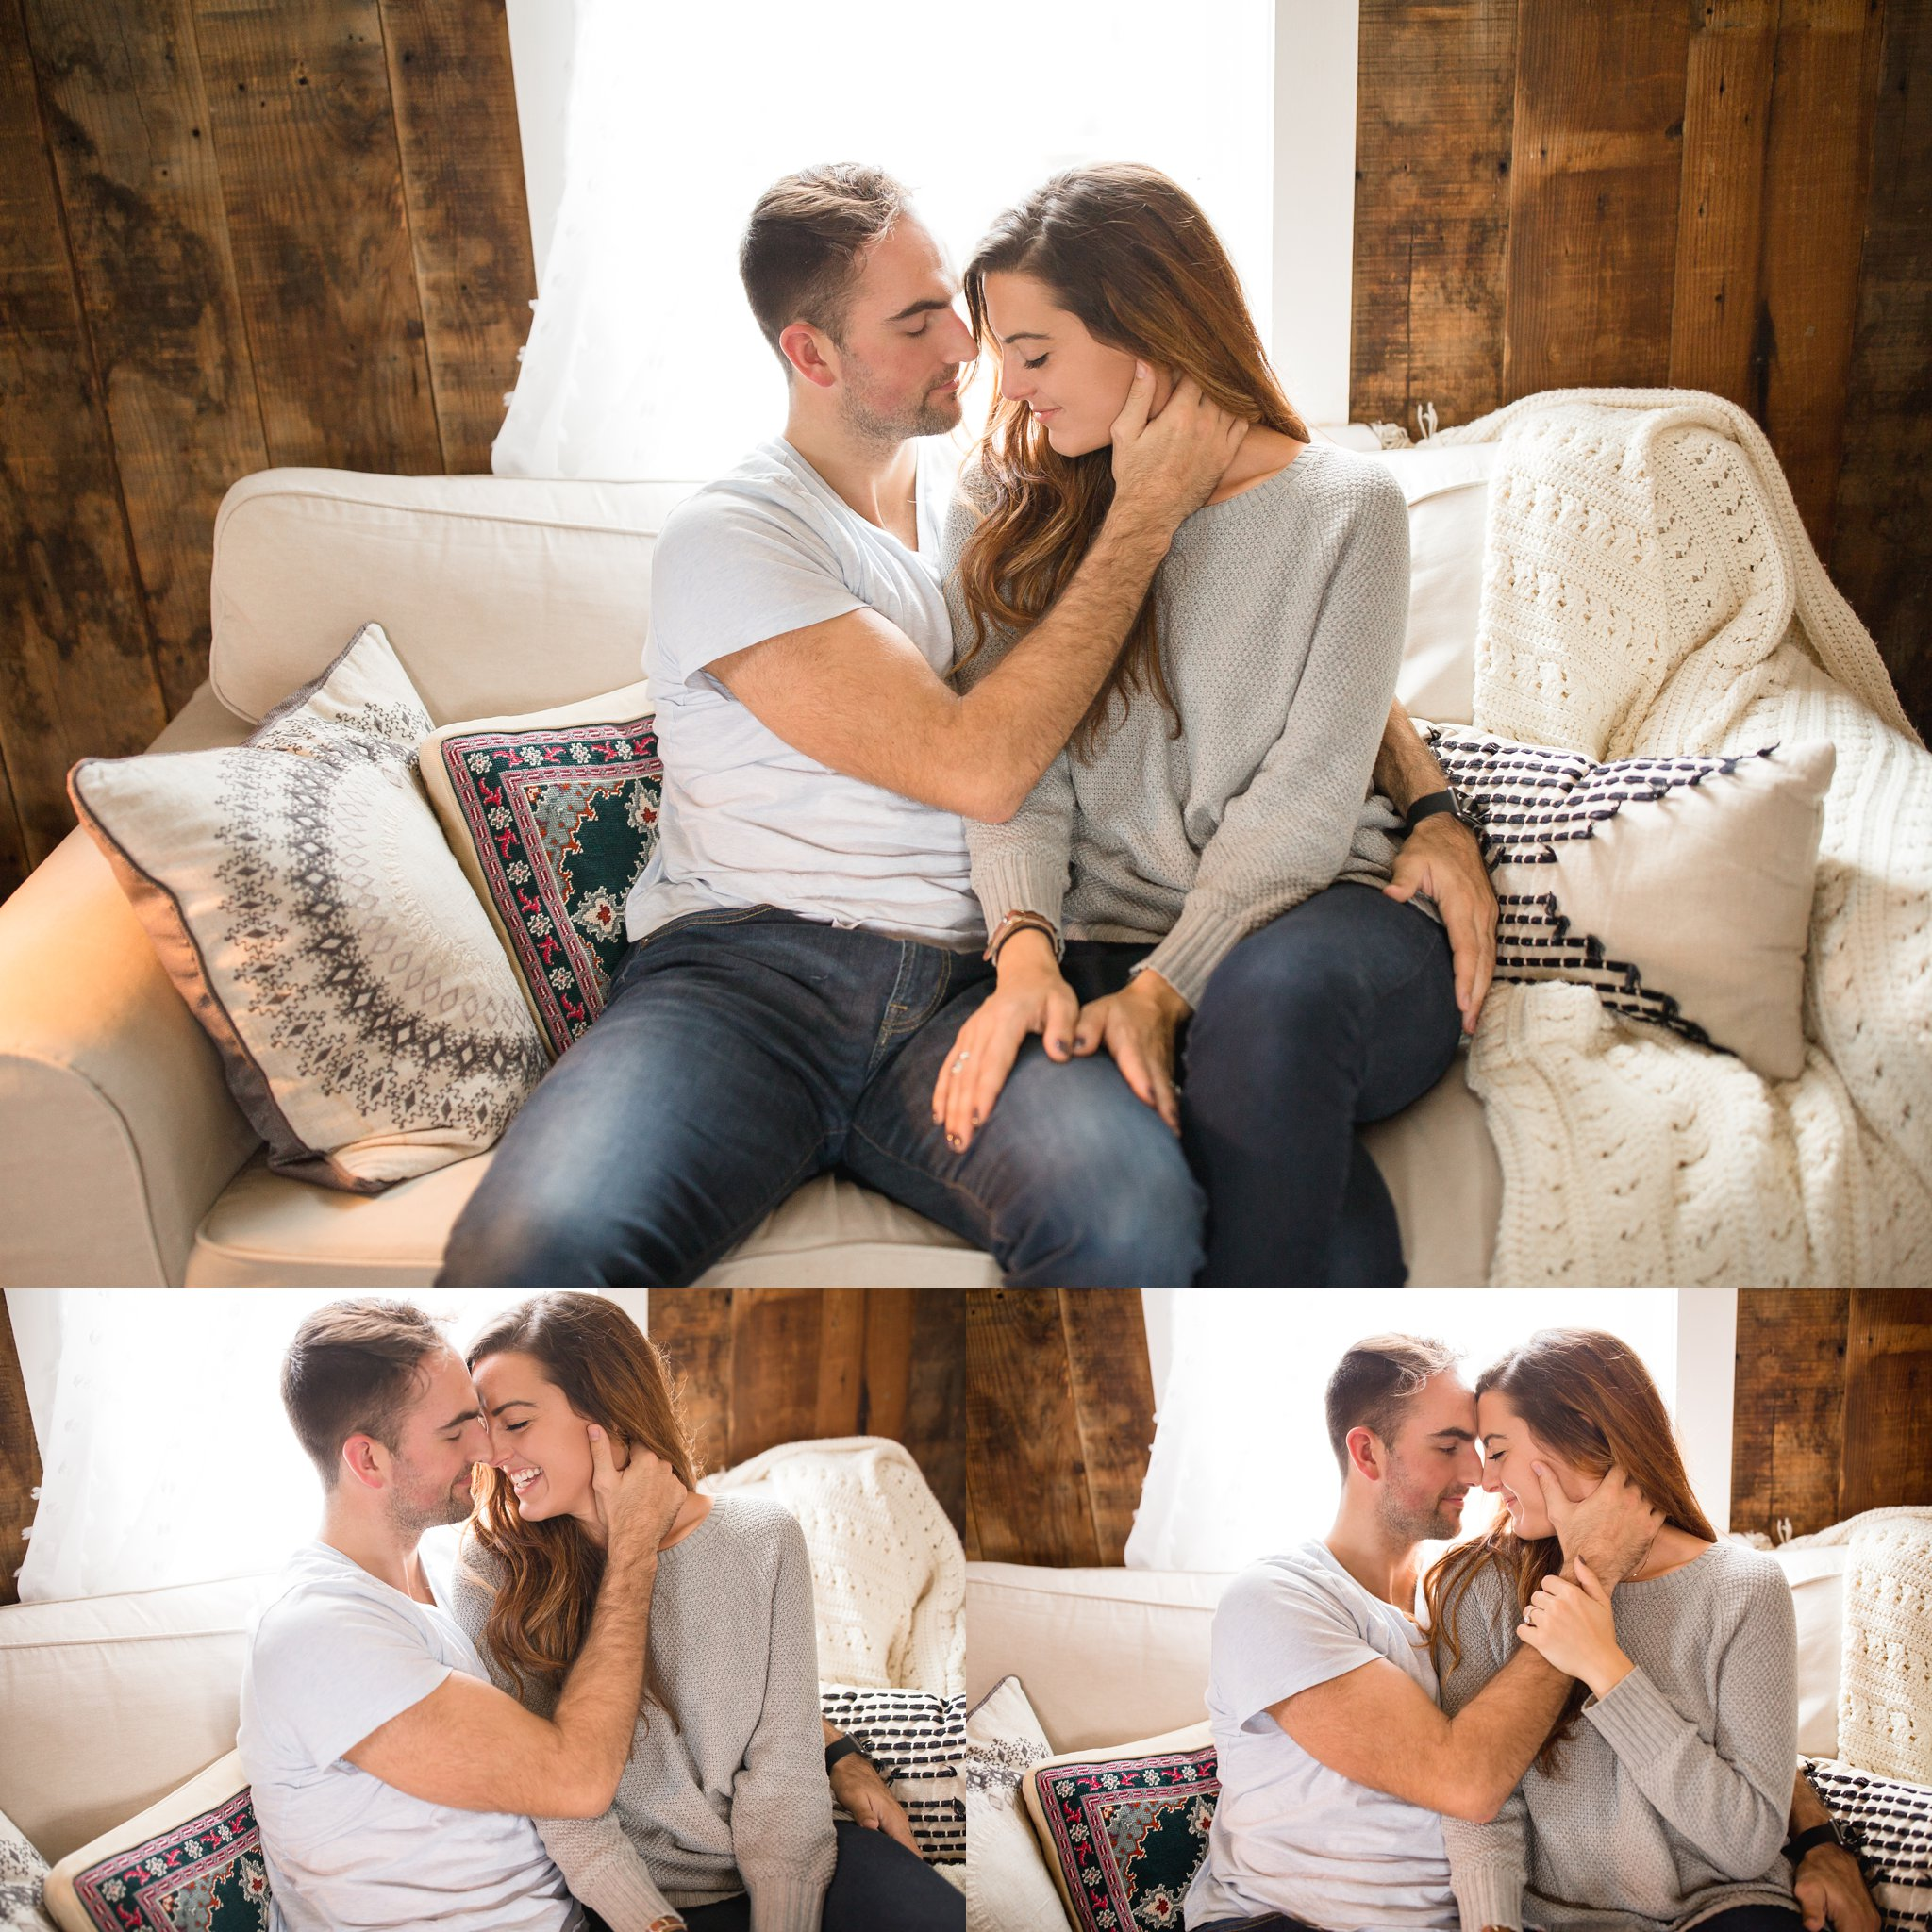 Indoor-Intimate-Engagement-Session04.jpg